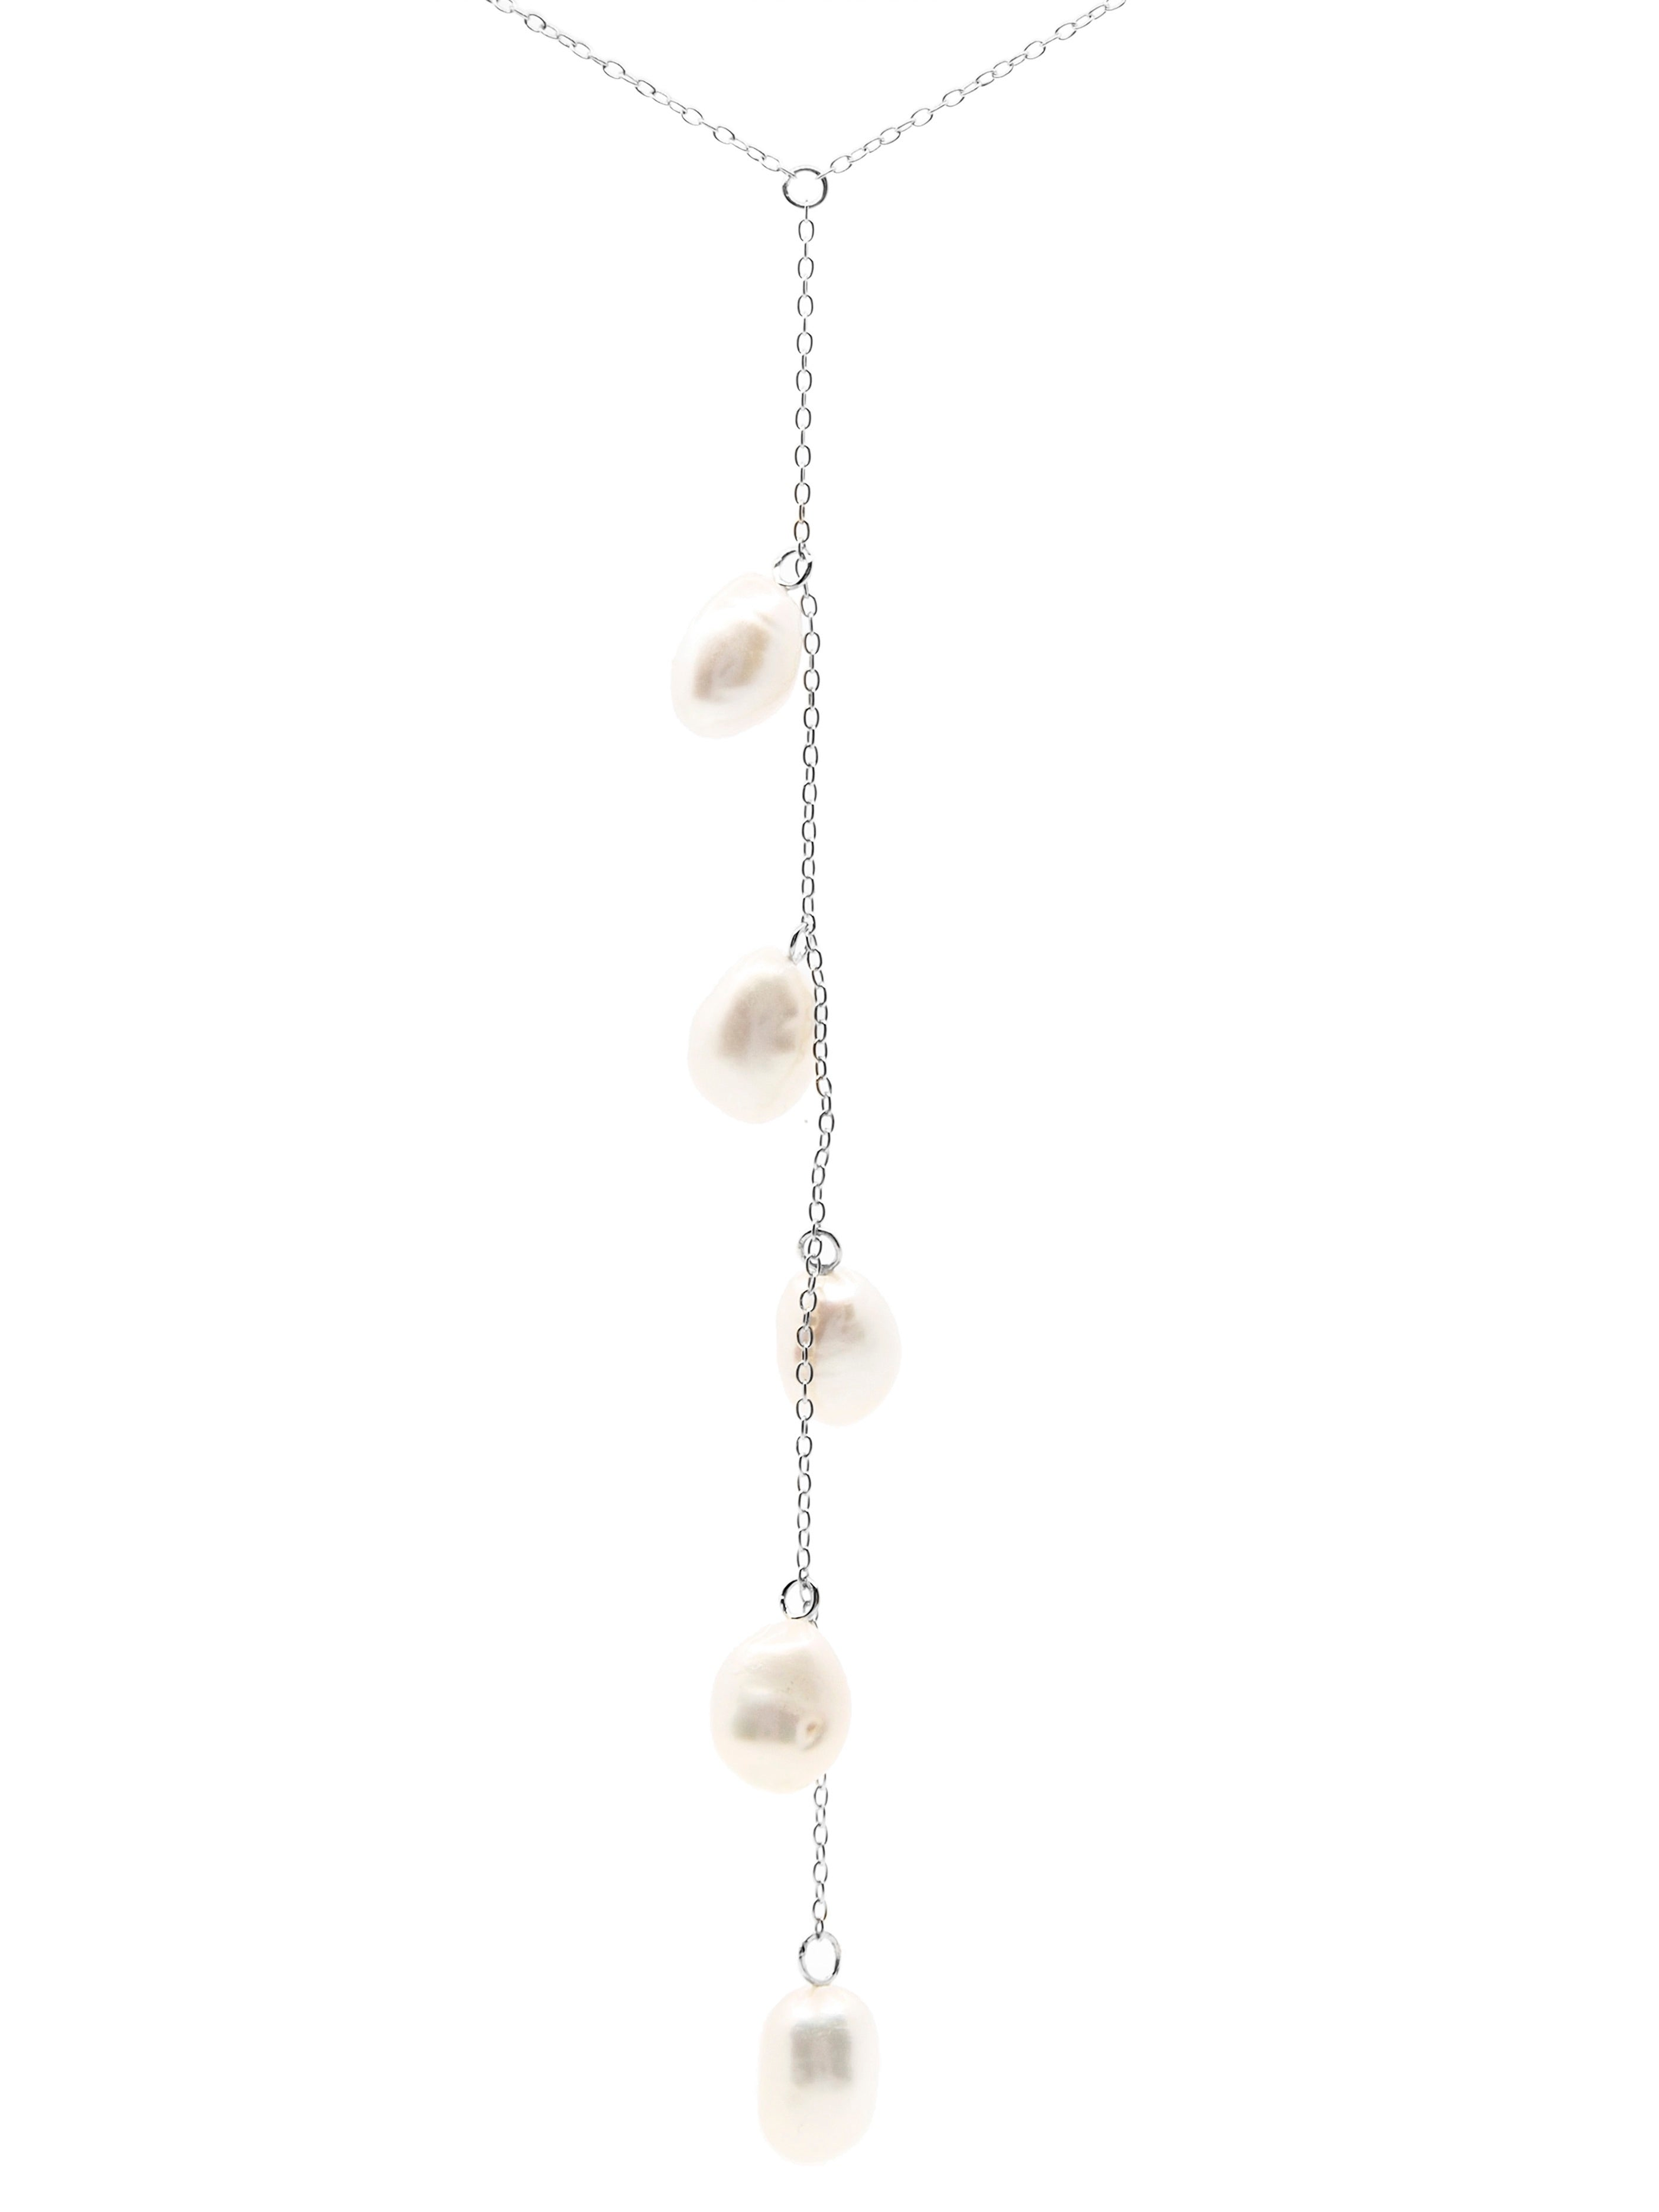 Cape Leveque baroque pearl drop necklace, sterling silver, rhodium plated